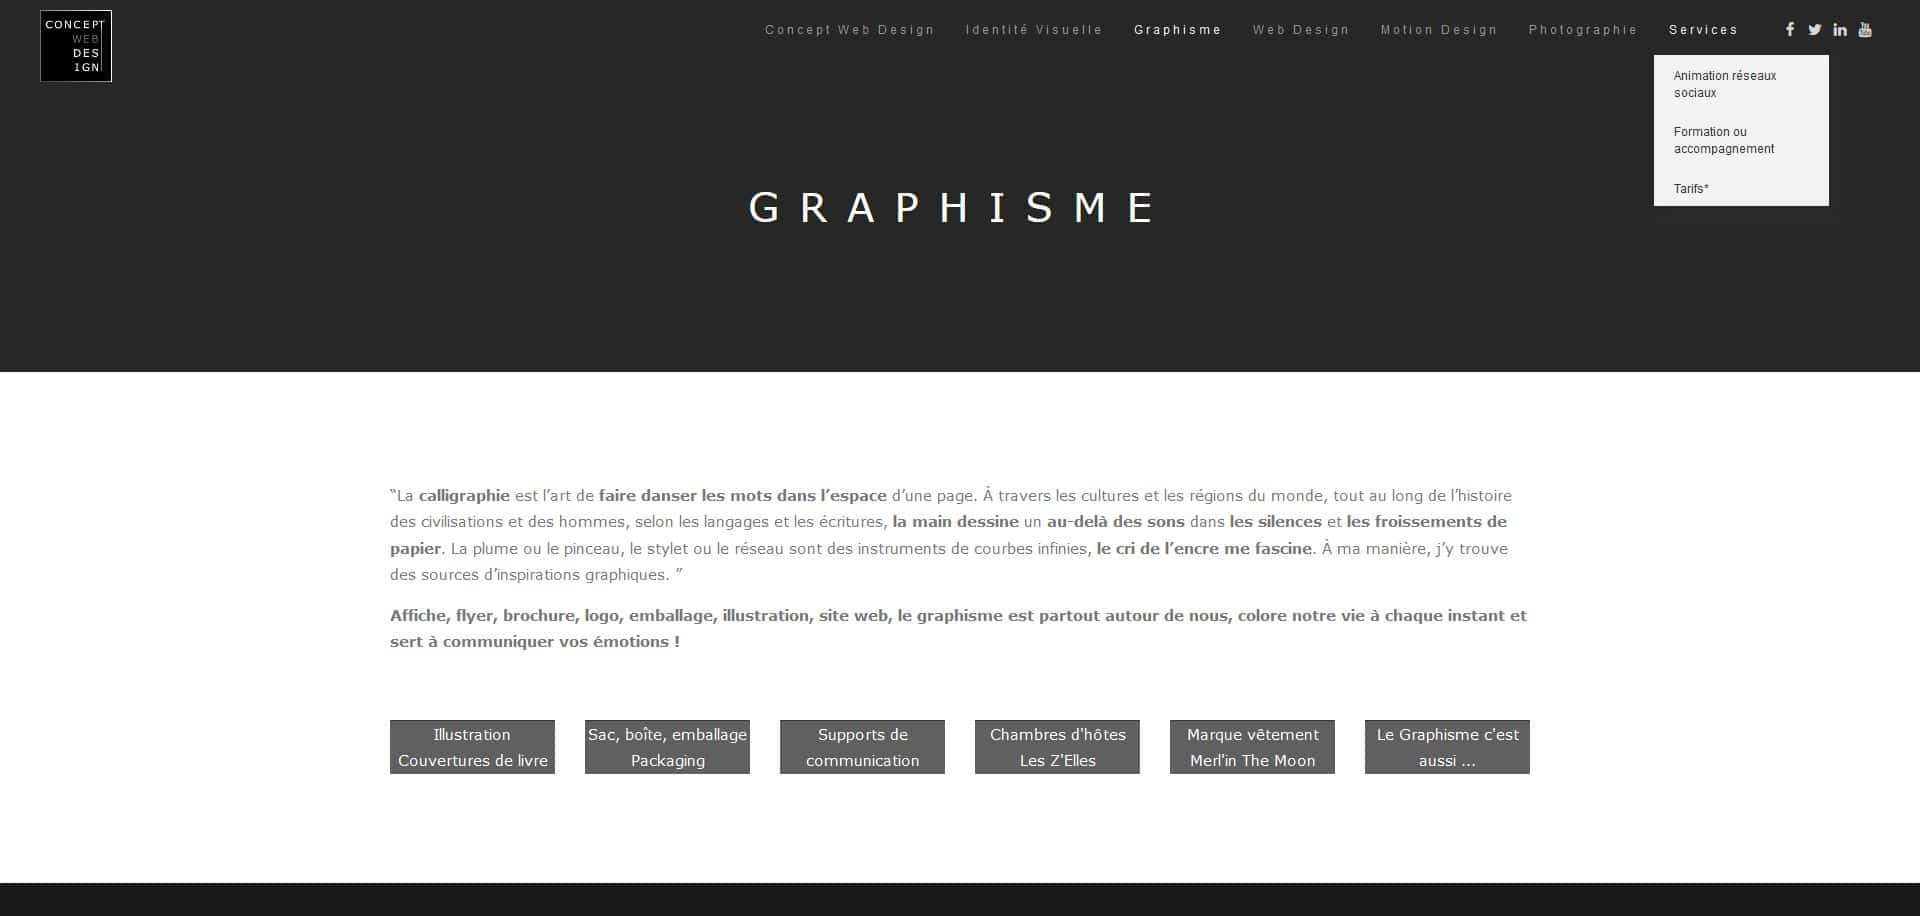 concept-web-design-graphisme